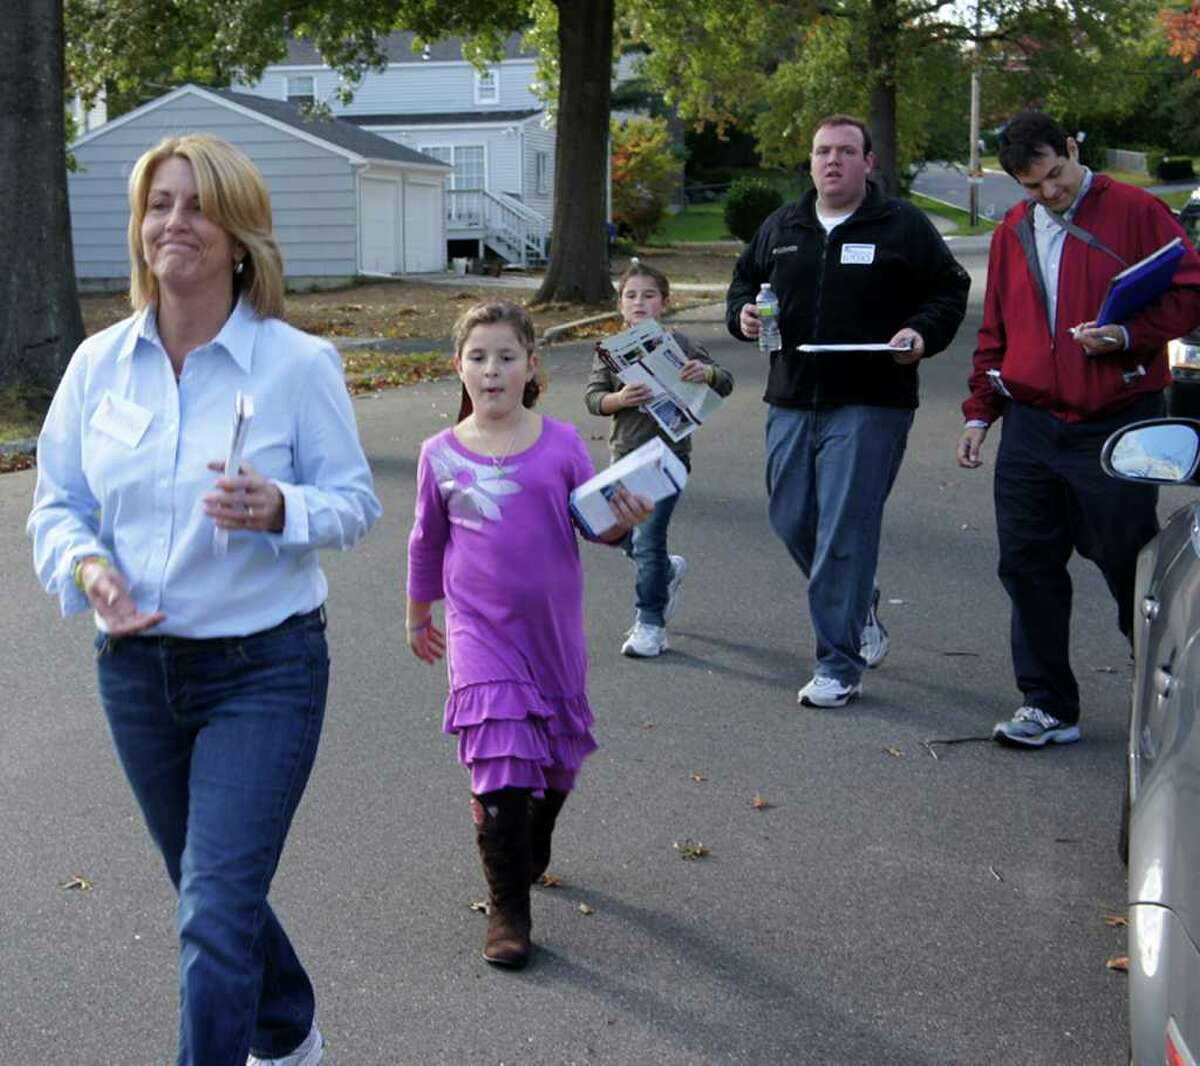 Brenda Kupchick, the Republican nominee for state representative in the 132nd District, leads her campaign team during an afternoon of door-to-door campaigning in the Tunxis Hill neighborhood of Fairfield on Saturday, Oct. 16, 2010. They are, from left, Kupchick, her niece Gianna, her niece Allie, and campaign volunteers Jon Crovo and Paul Pimentel.